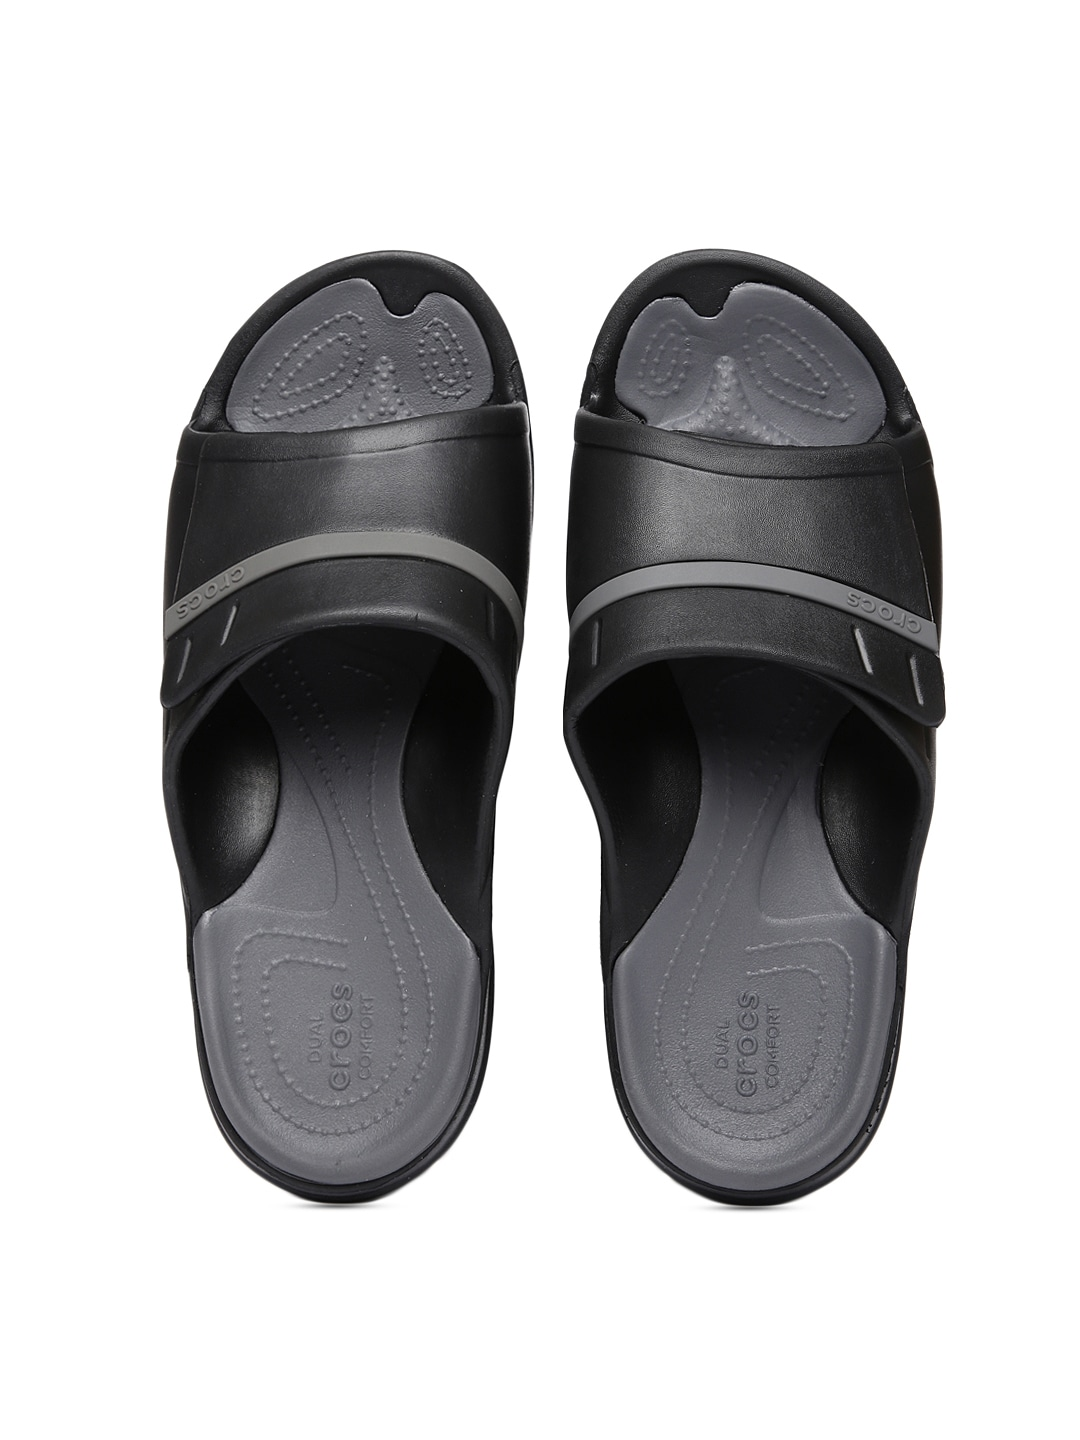 62dab5705c54 Crocs Flip Flops - Buy Crocs Flip Flops Online in India